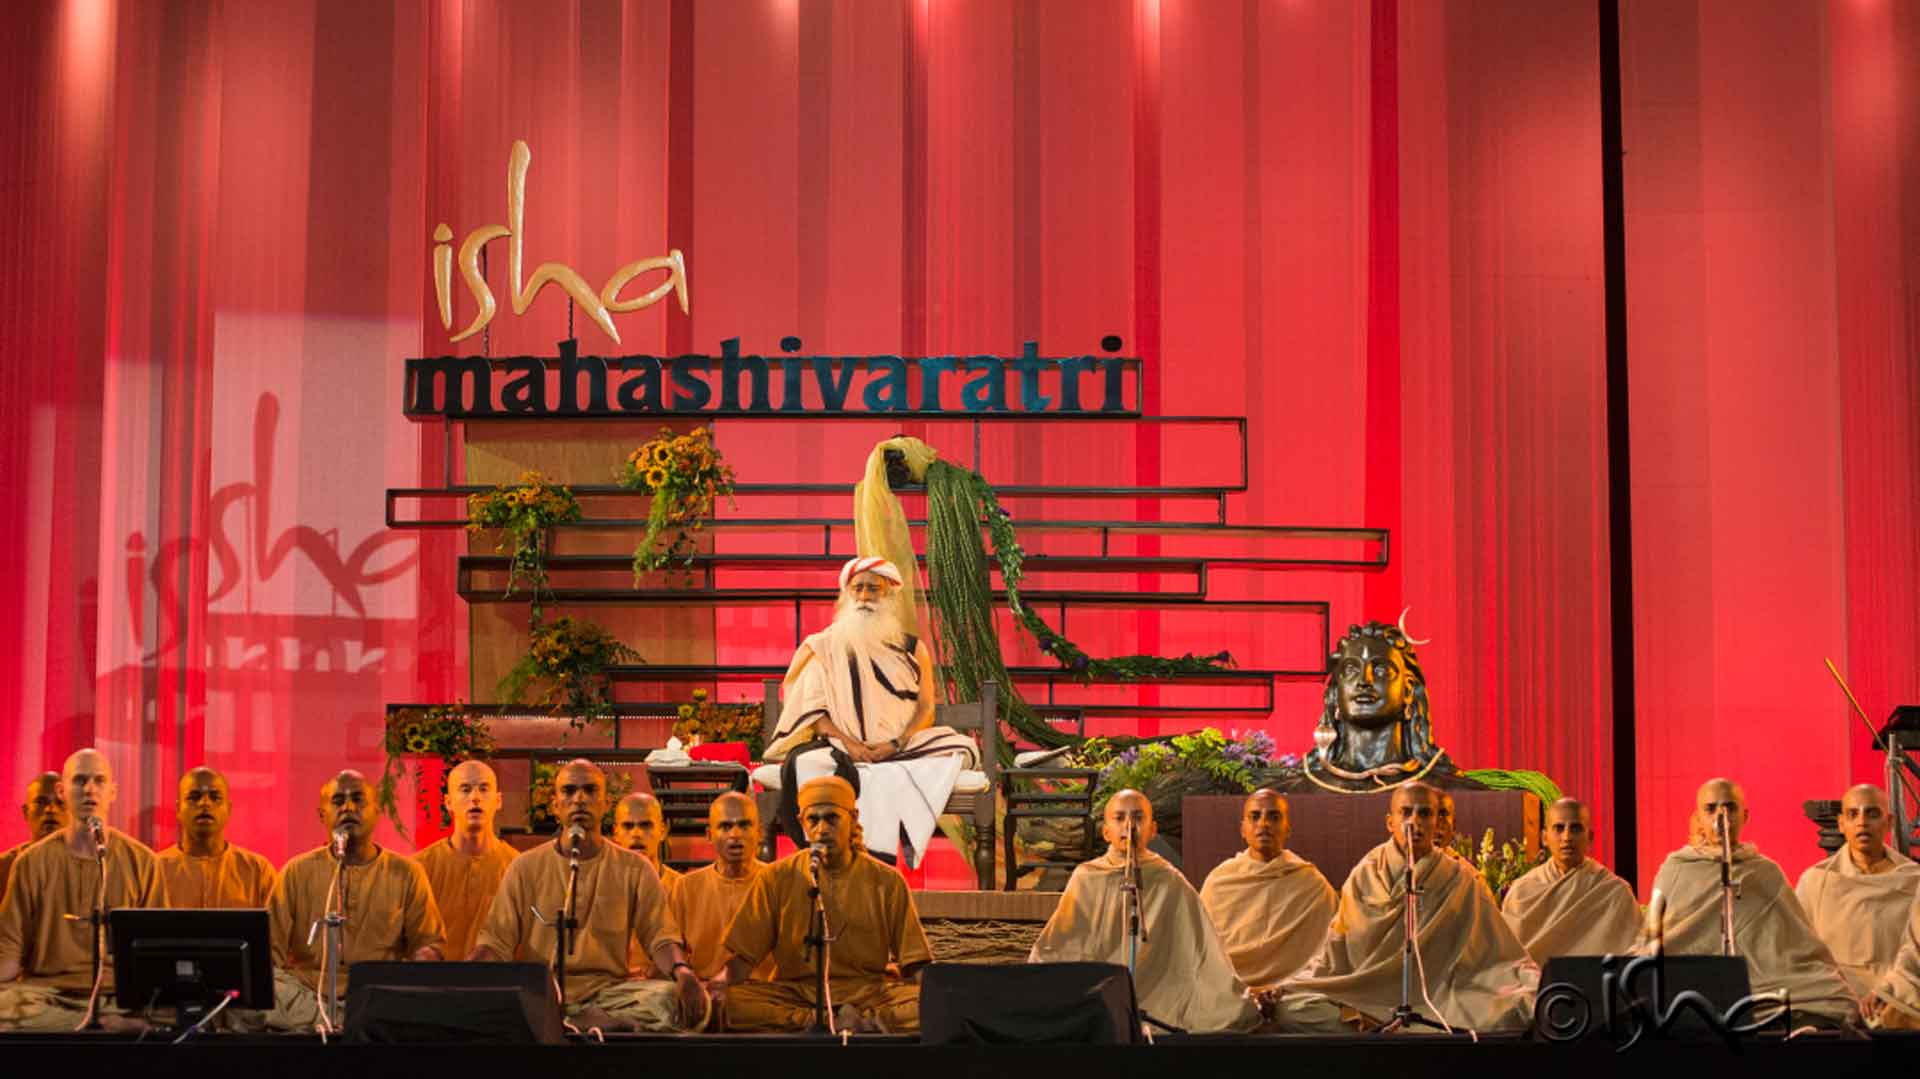 Chanting by Isha brahmacharis